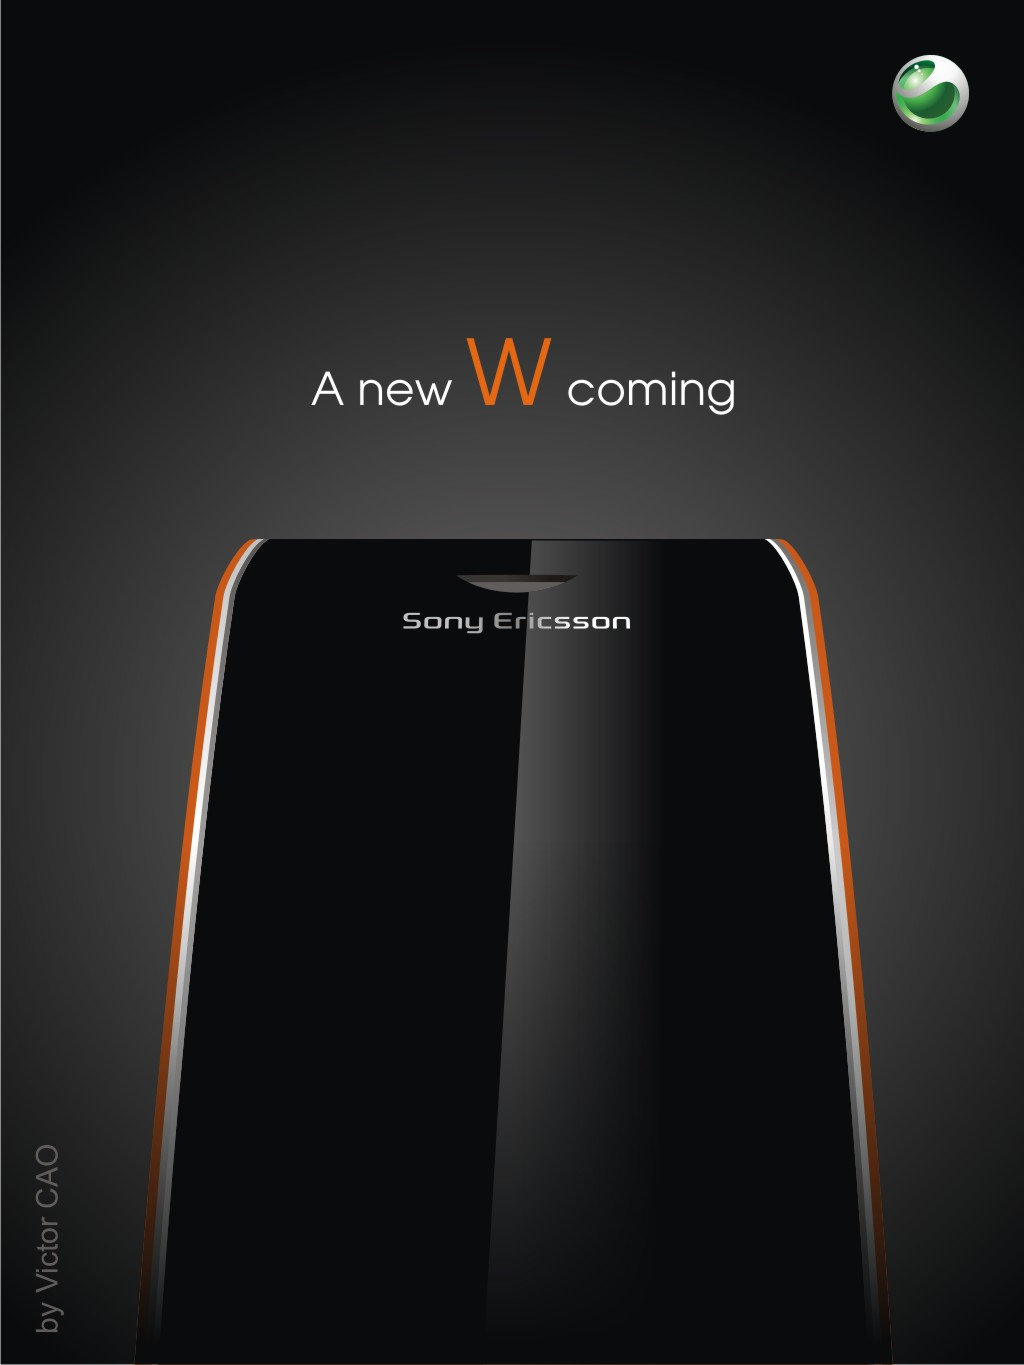 A New Sony Ericsson Walkman Model Coming... Total Mystery!